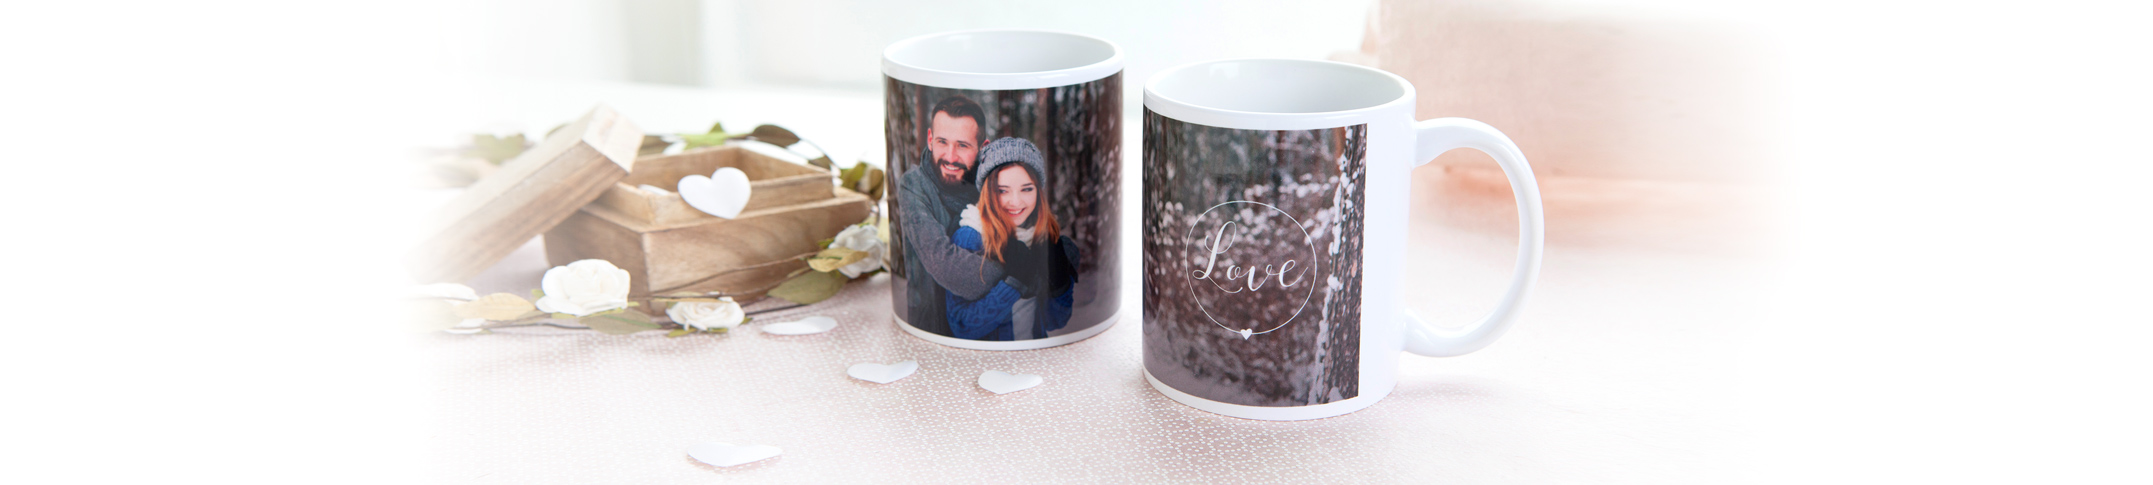 Personalised Photo Mugs - An appreciated and unique gift!